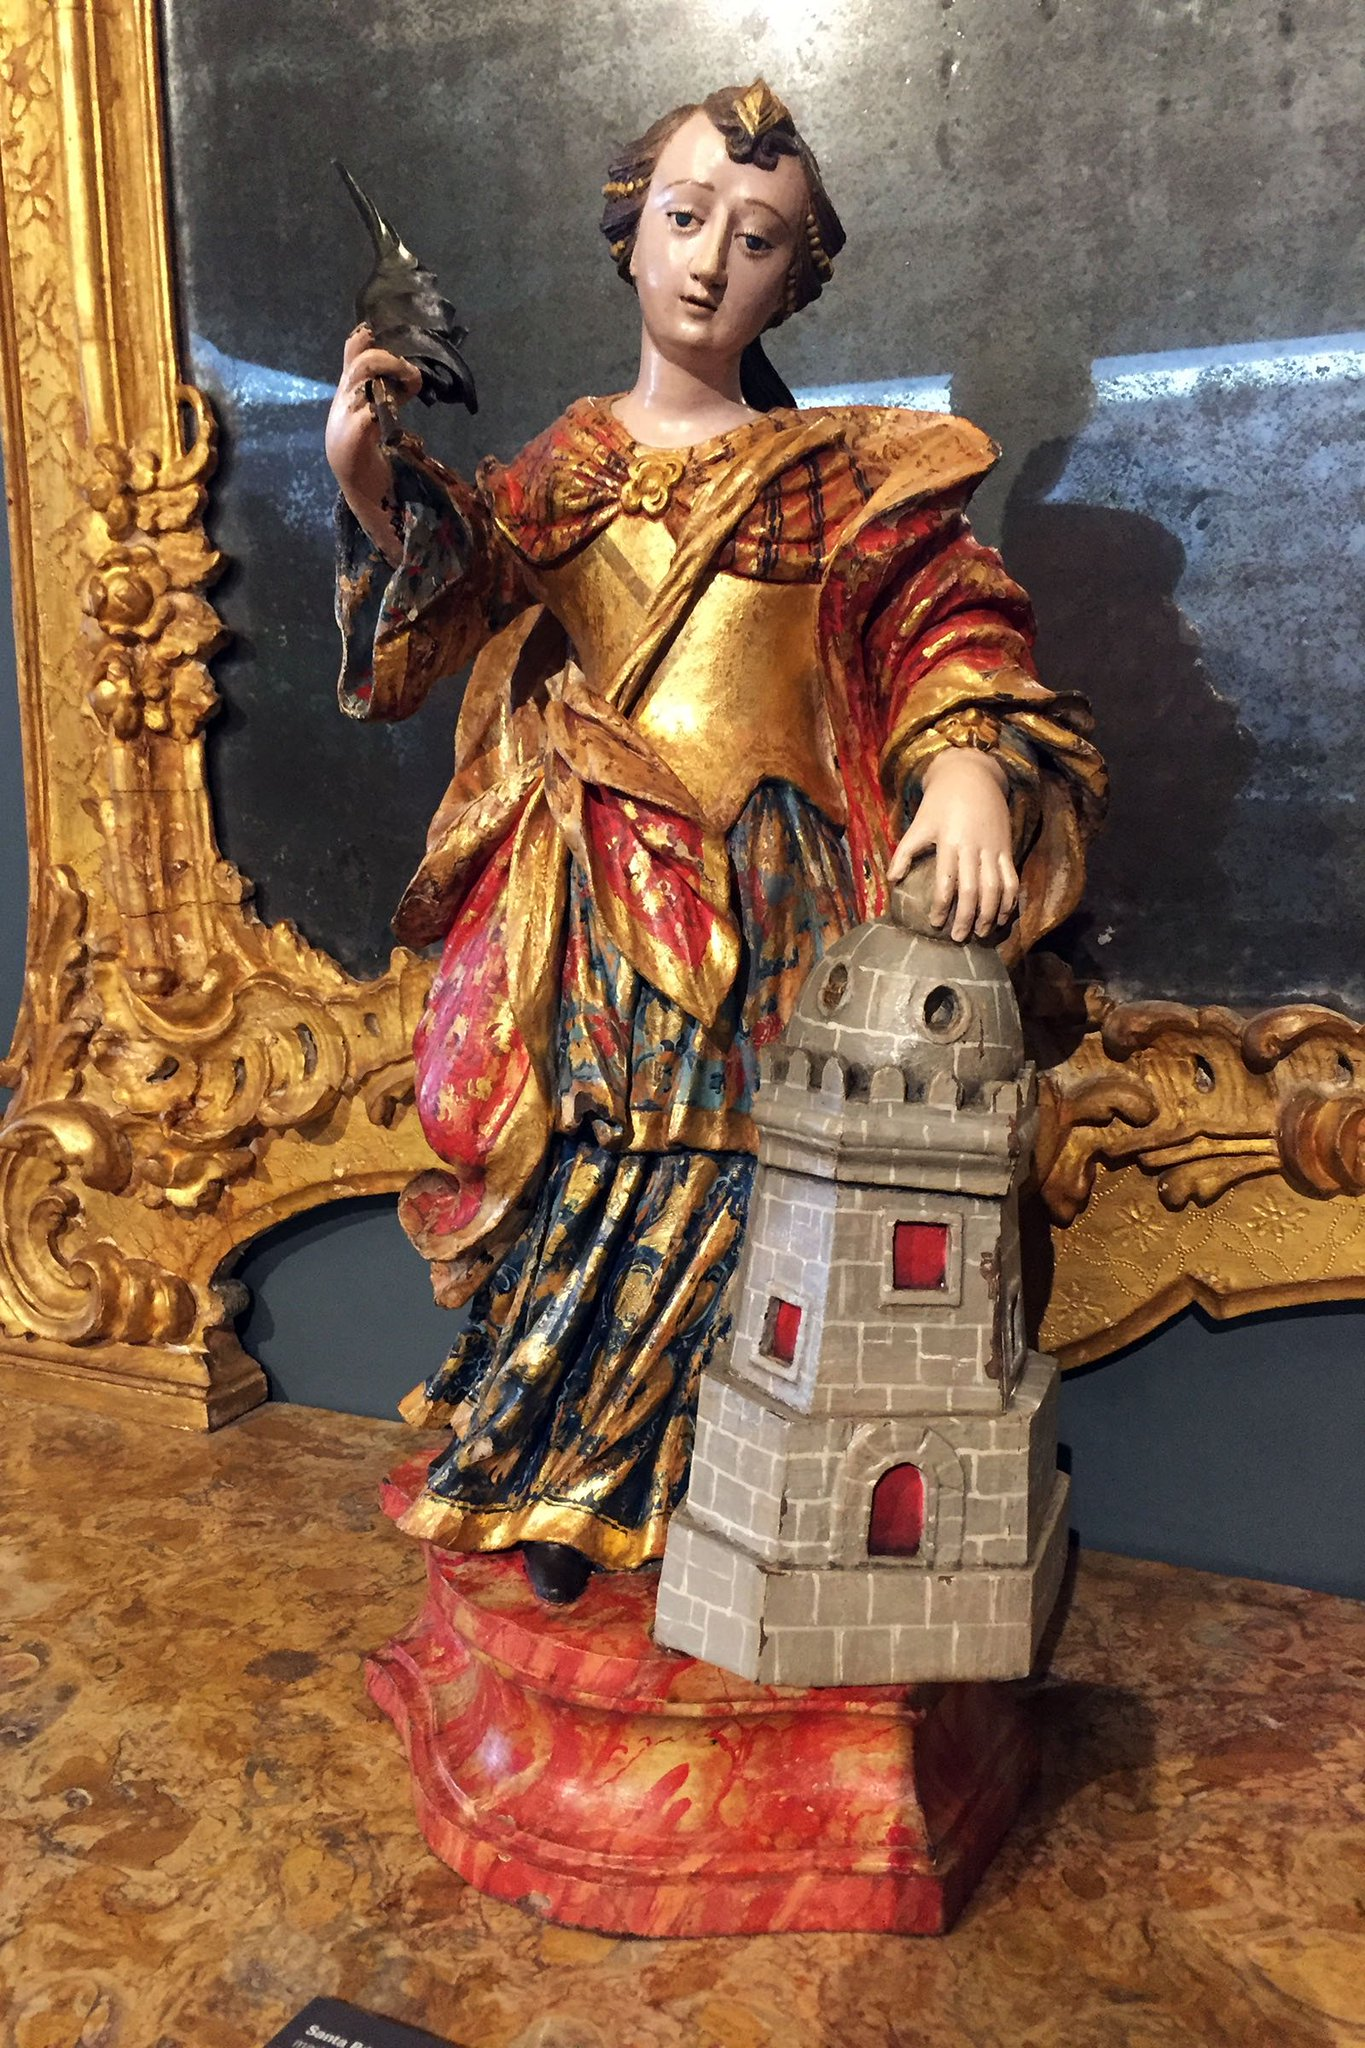 Darths Droids On Twitter On A Trip To Portugal Back In May I Found This Renaissance Era R2 D2 In The Monument Church Of Sao Francisco Porto Https T Co Chbzgzhtkn Darths & droids ретвитнул(а) andrew mcgrae. twitter